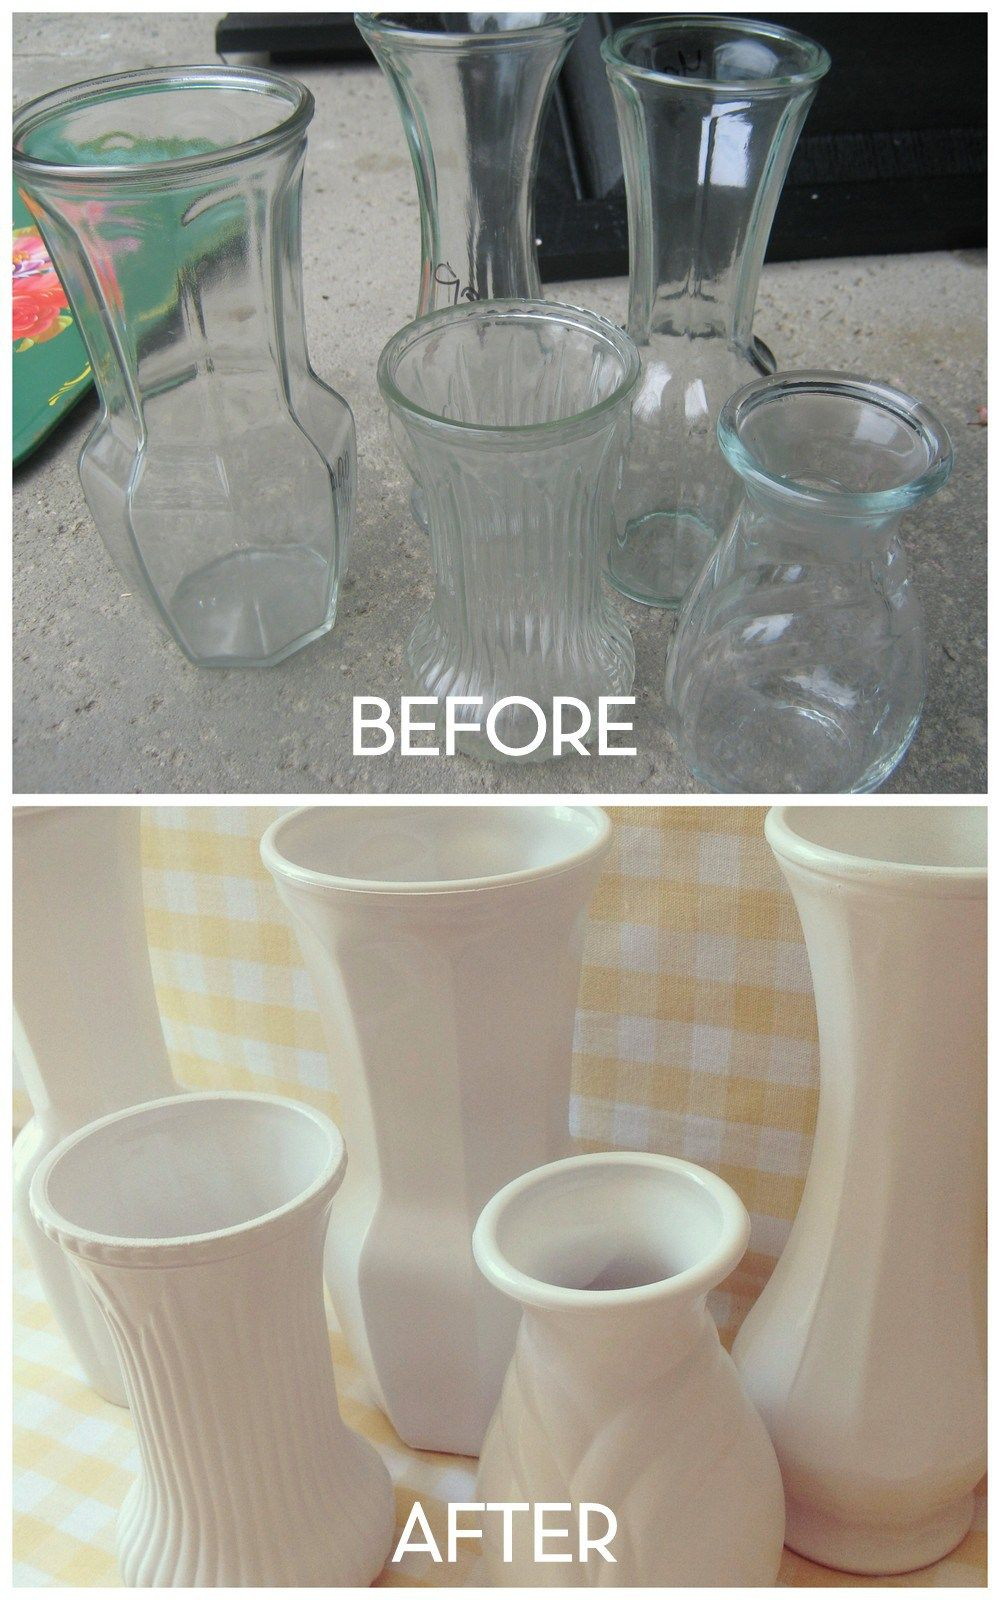 How to spray paint vases pinteres home made modern faux milk glass fabulous idea for all those cheap vases that bouquets come in just a couple coats of white gloss spray paint floridaeventfo Gallery